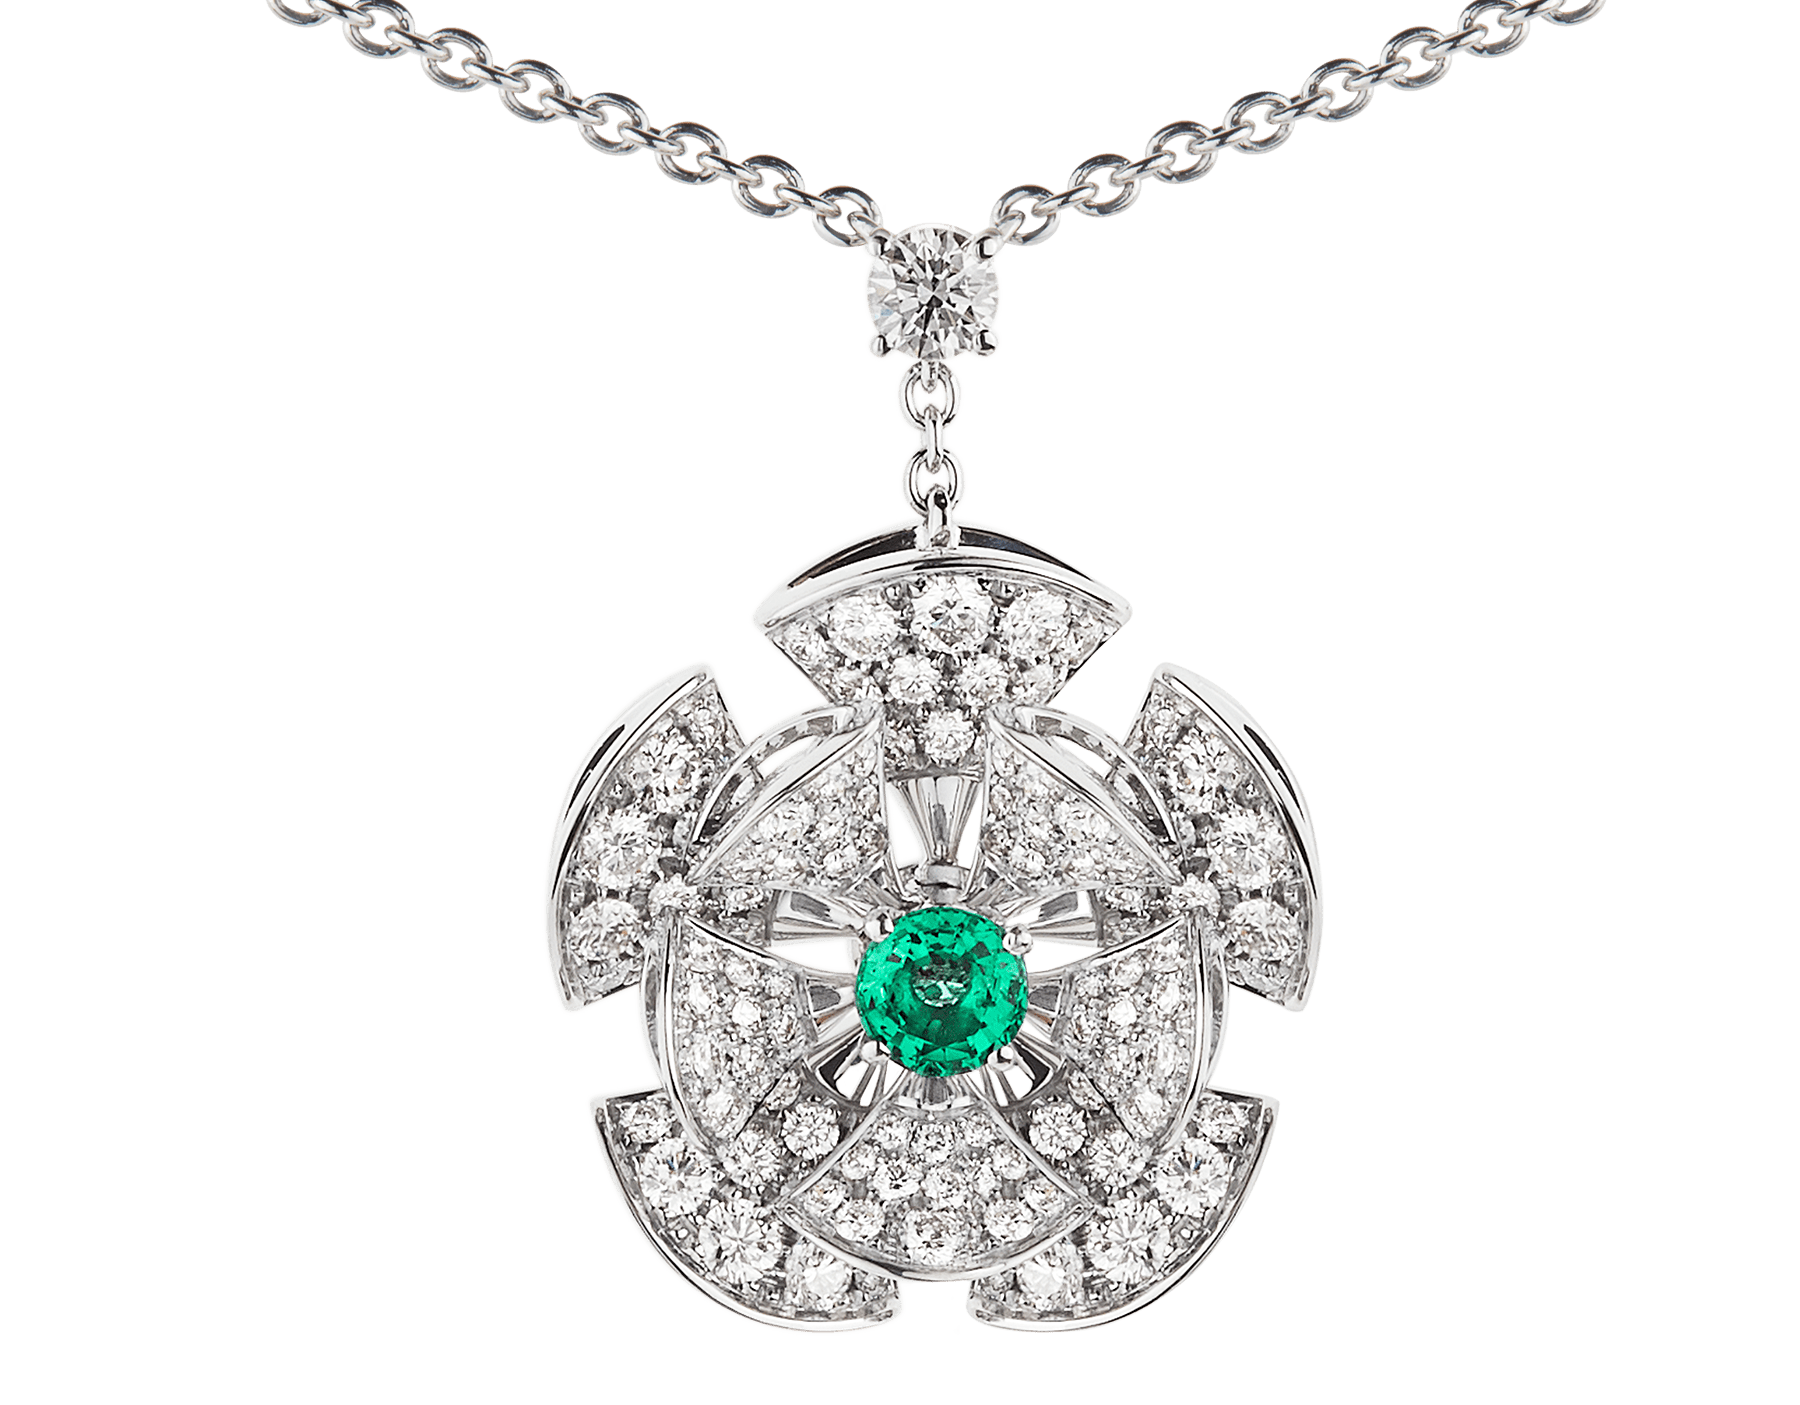 DIVAS' DREAM necklace in 18 kt white gold with chain set with emeralds and a diamond, and with a pendant set with a central enerald and pavé diamonds. 352626 image 3